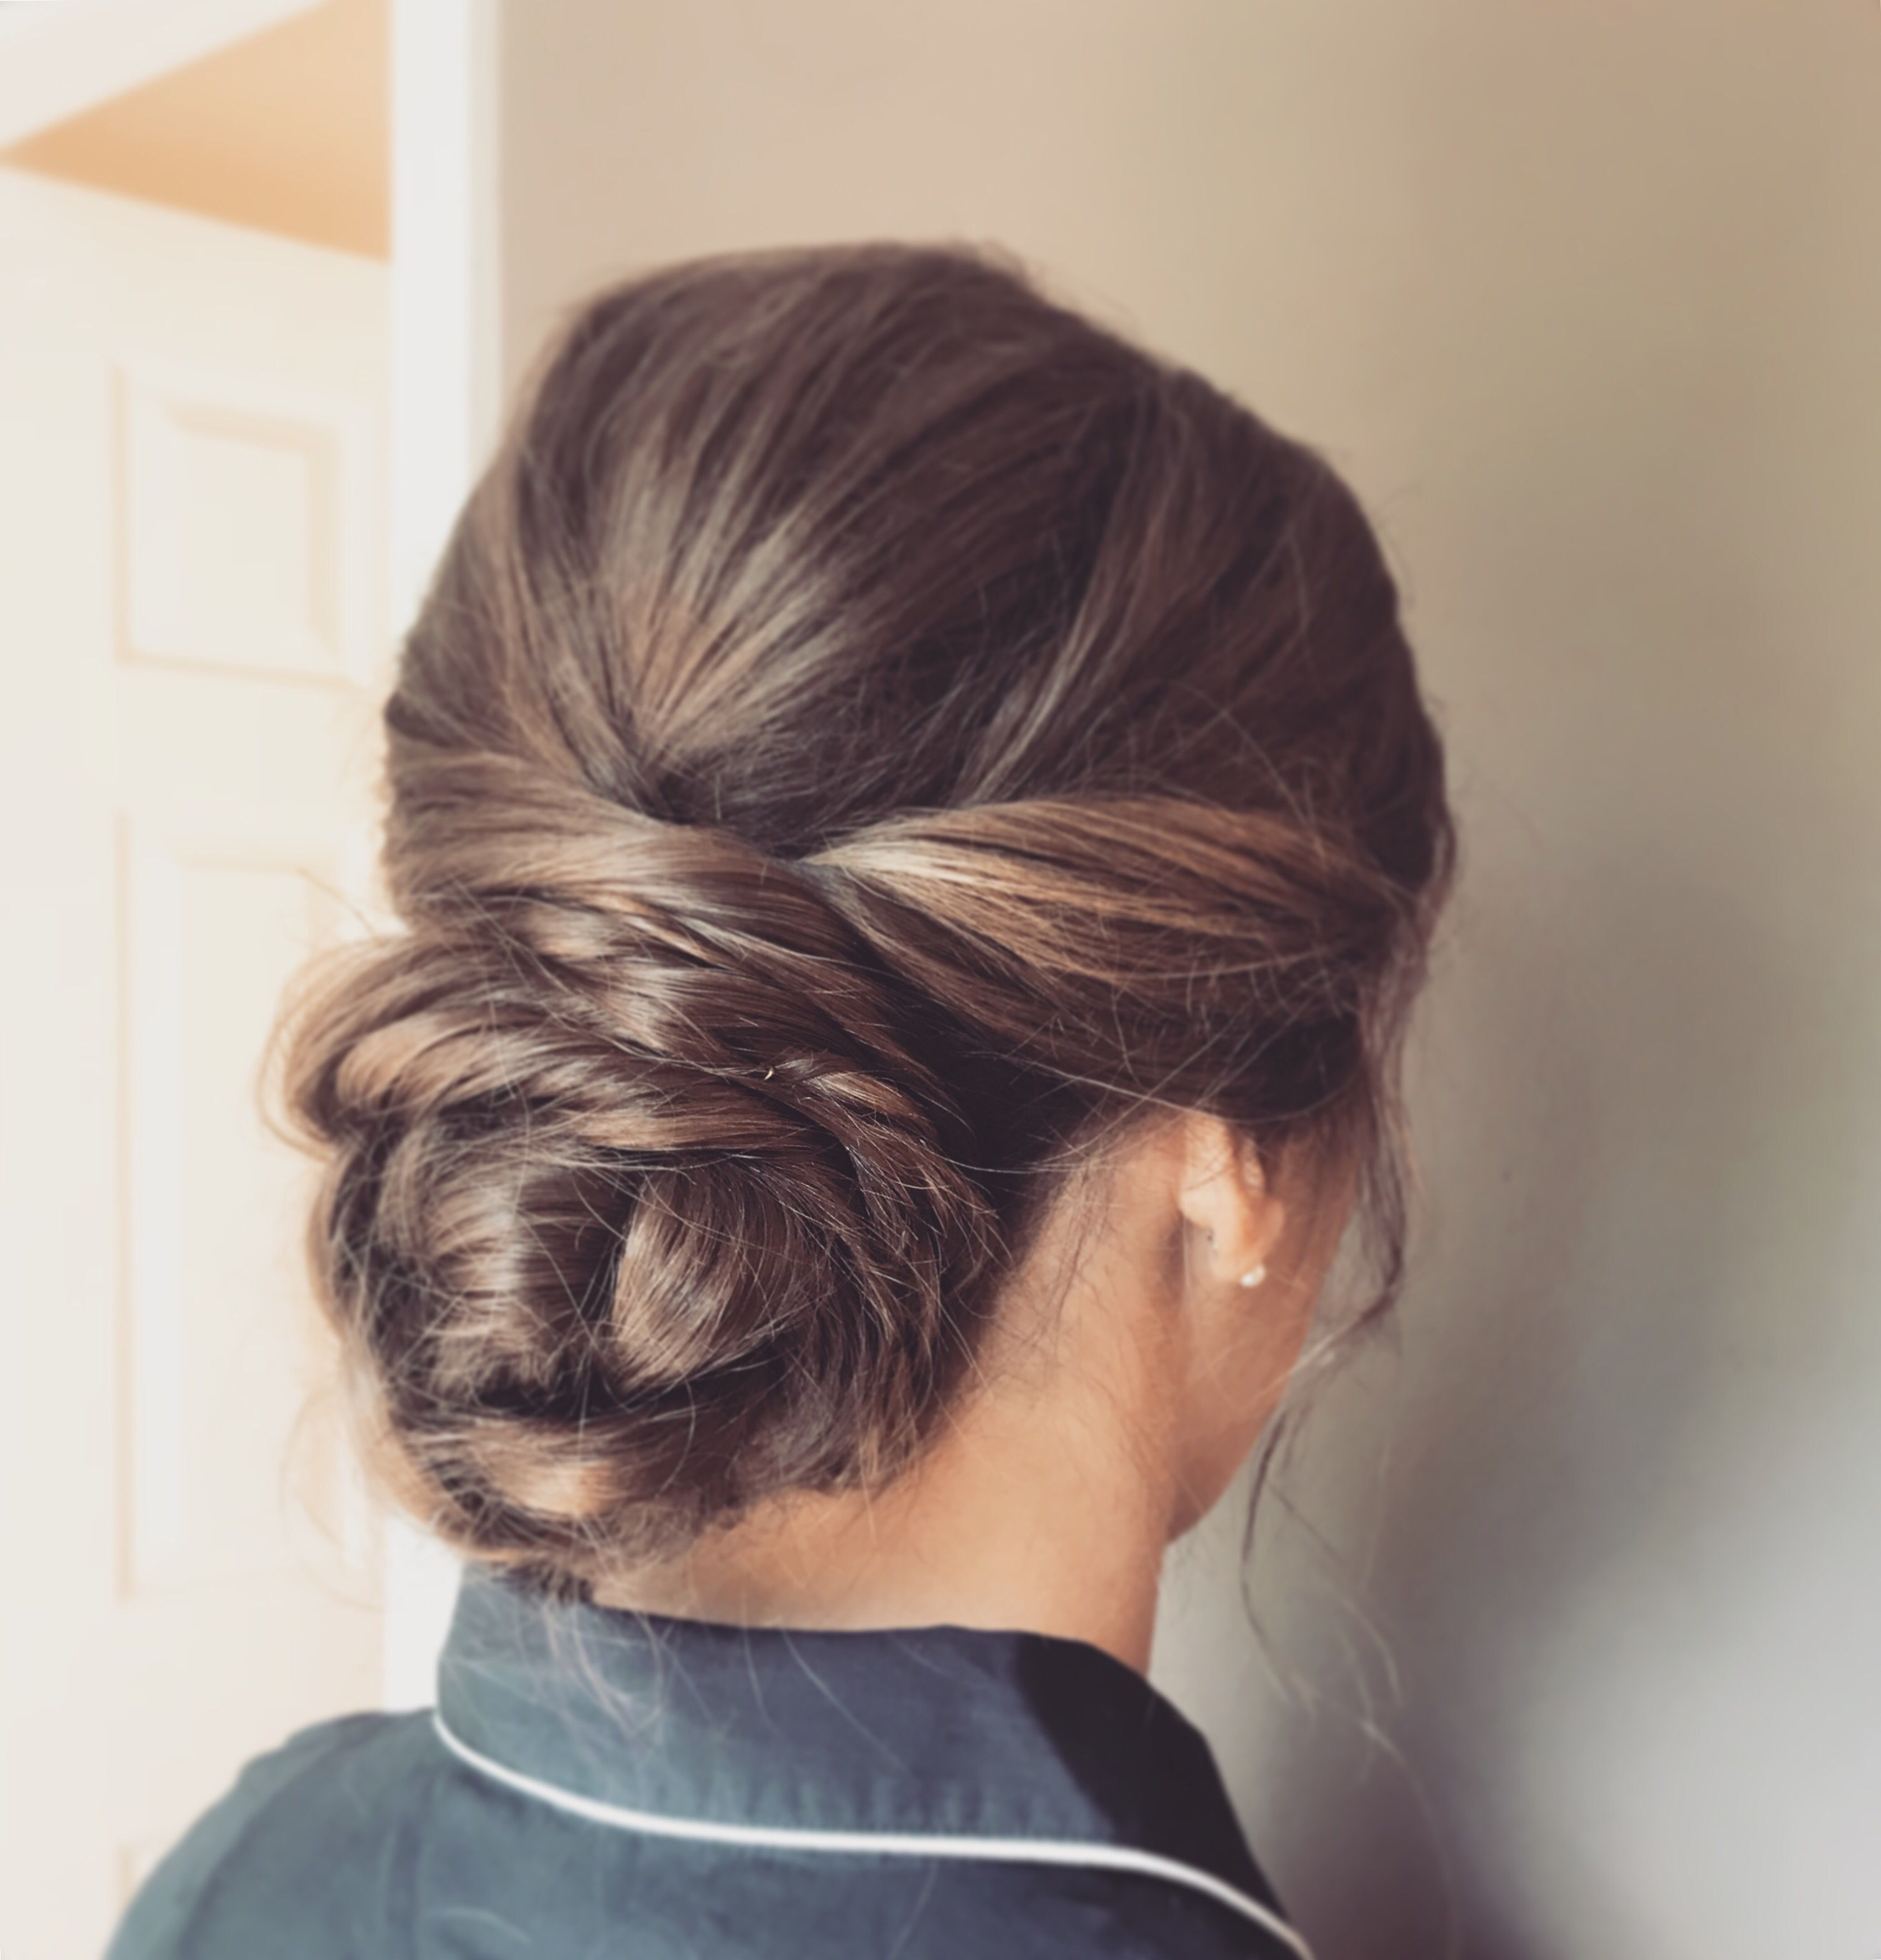 Traveler Beauty Company Bridesmaid Bun Sweet 16 Hairstyles Bridesmaid Updo